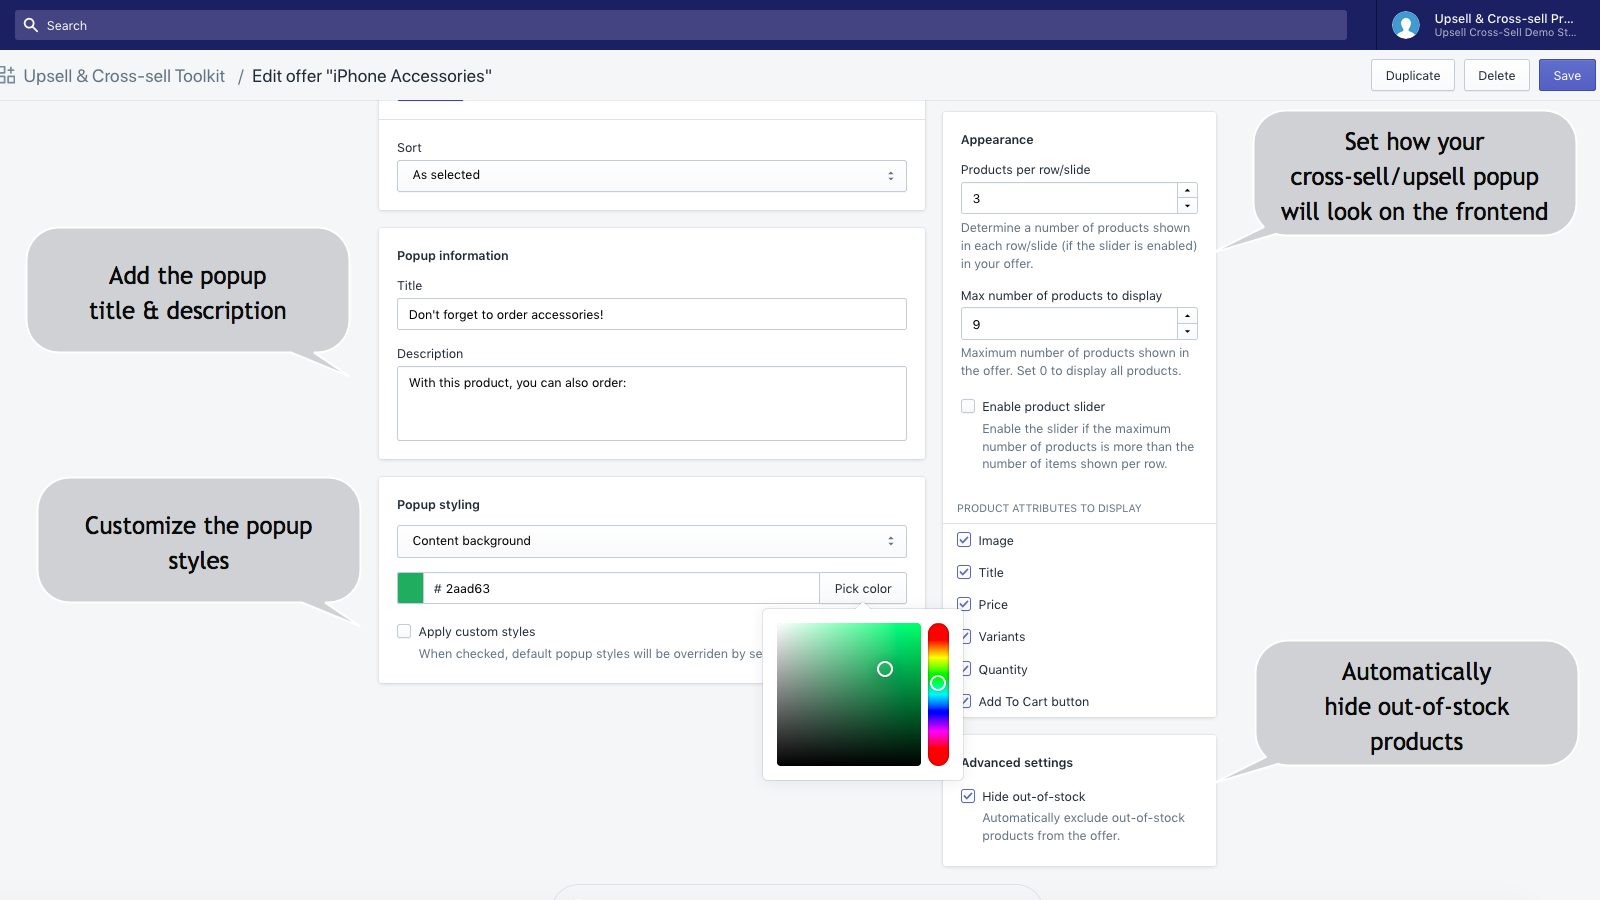 Related Products Manager app for Shopify, General settings